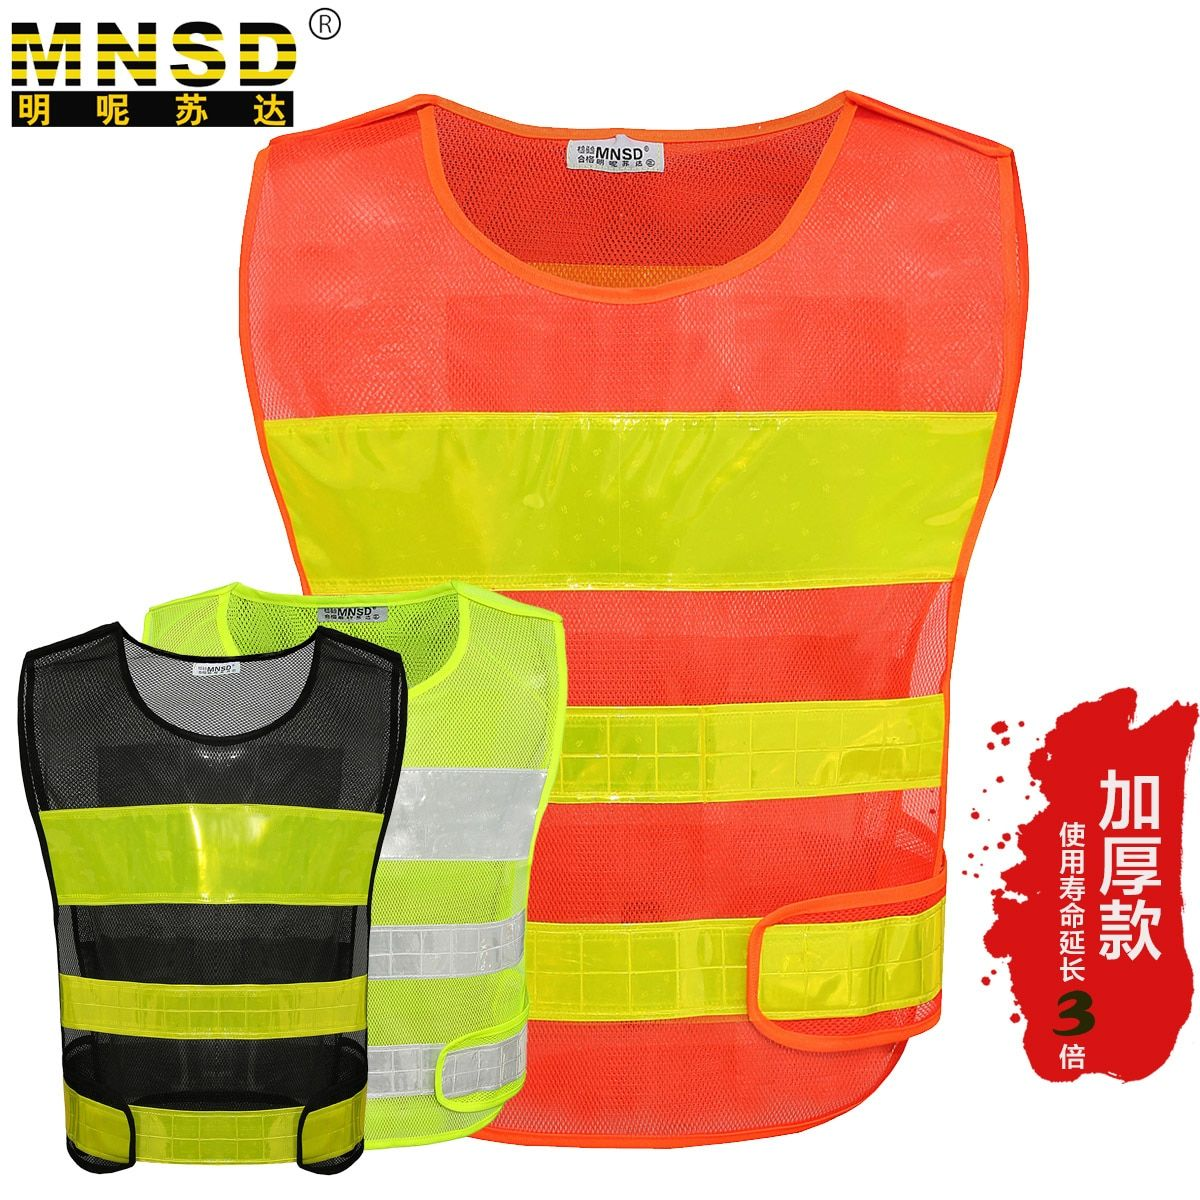 MNSD 3Color Safety Reflective Vest Yellow Safety Vest Red Safety Vest Black Safety Vest Chaleco Reflectante Gilet Jaune Securite